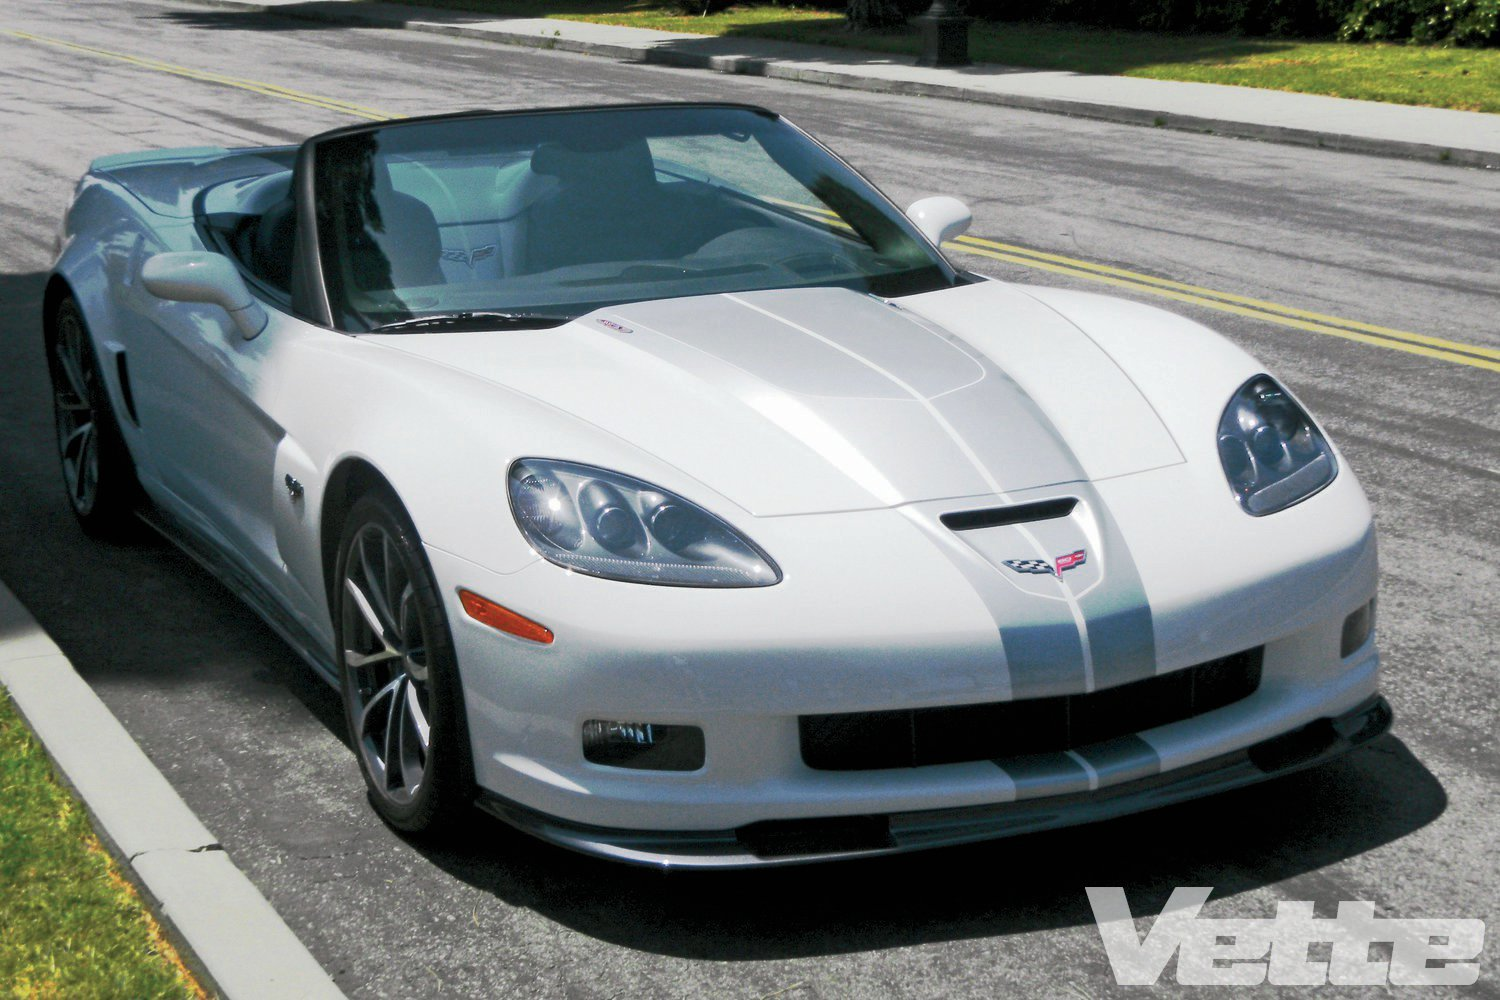 2018 Chevrolet Corvette 427 Convertible photo - 4